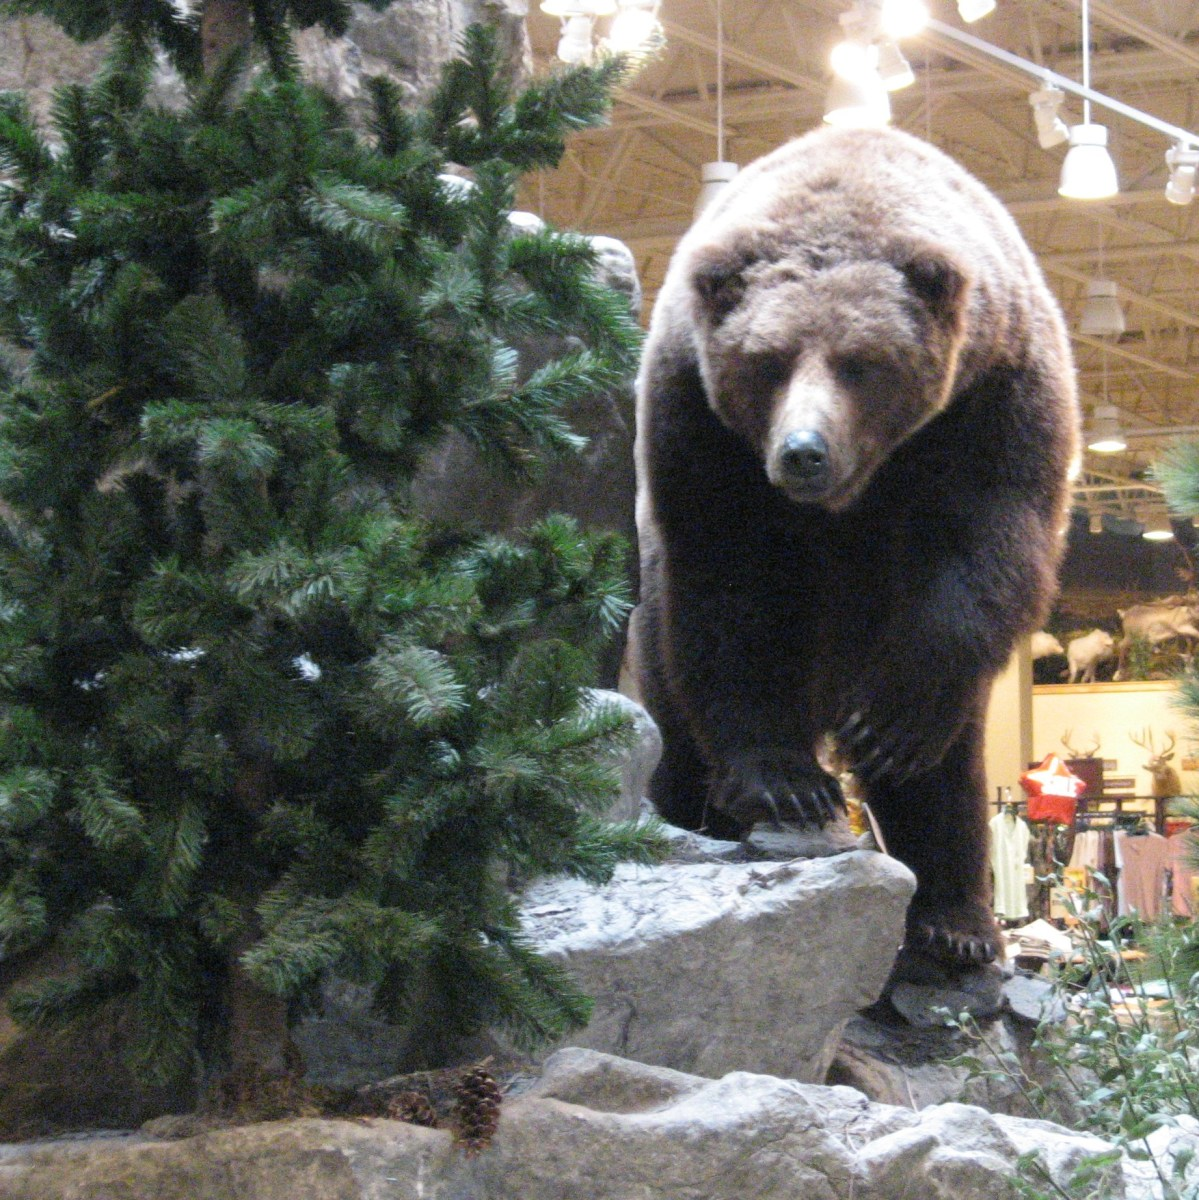 Actually this bear is at a Cabella's store, so is unlikely to attack anyone.